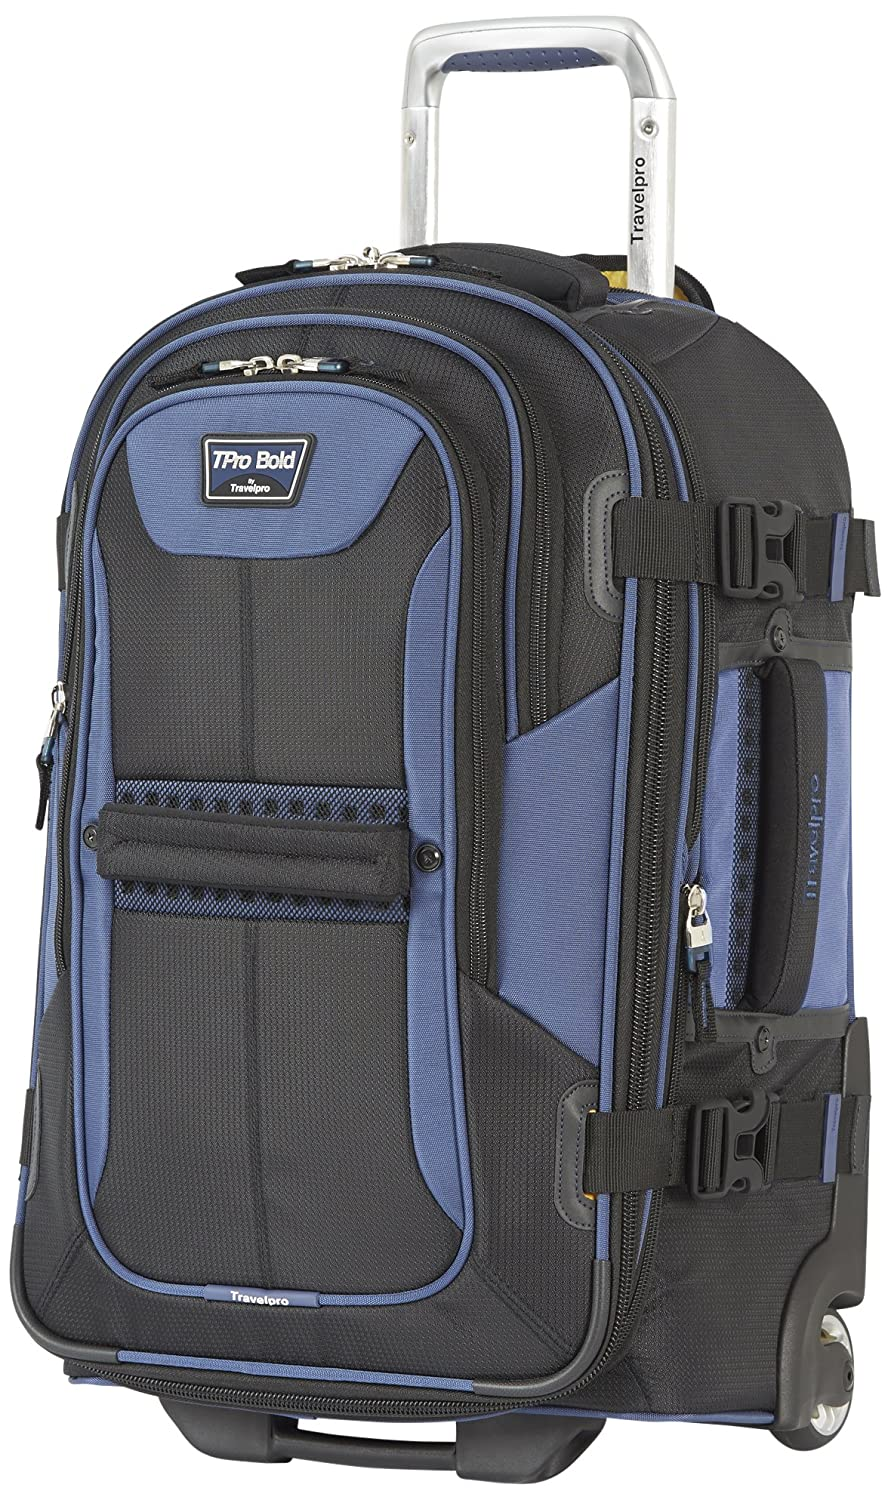 Travelpro T-Pro Bold 2.0 22 Expandable Rollaboard Black/Navy One Size Travelpro International Inc. 412152222